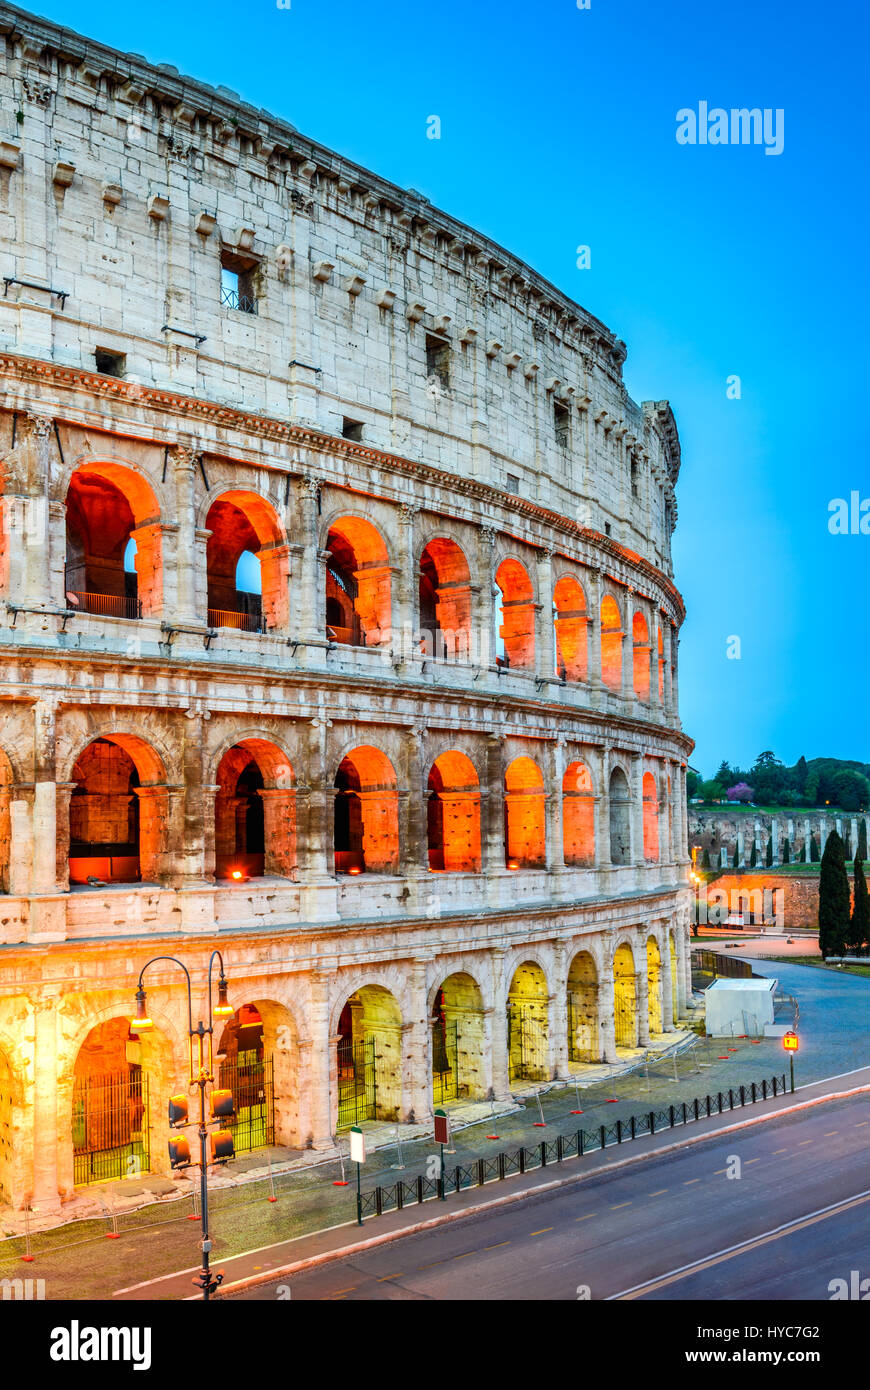 Rome, Italy. Colosseum, Coliseum or Coloseo,  Flavian Amphitheatre largest ever built symbol of ancient Roma city - Stock Image